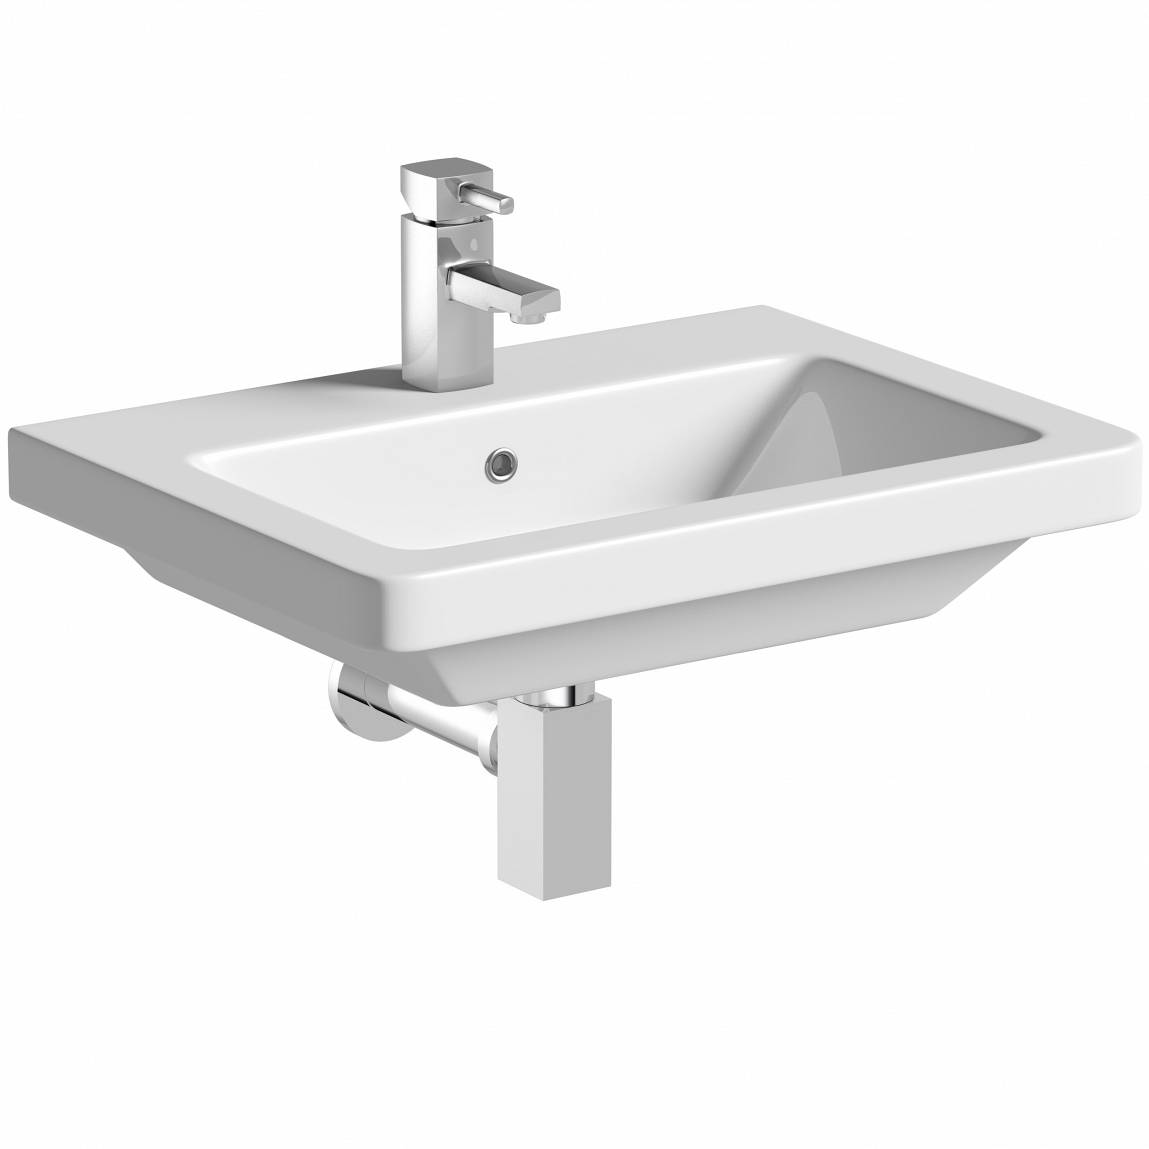 Image of Verso 1TH 600mm Wall Hung Basin